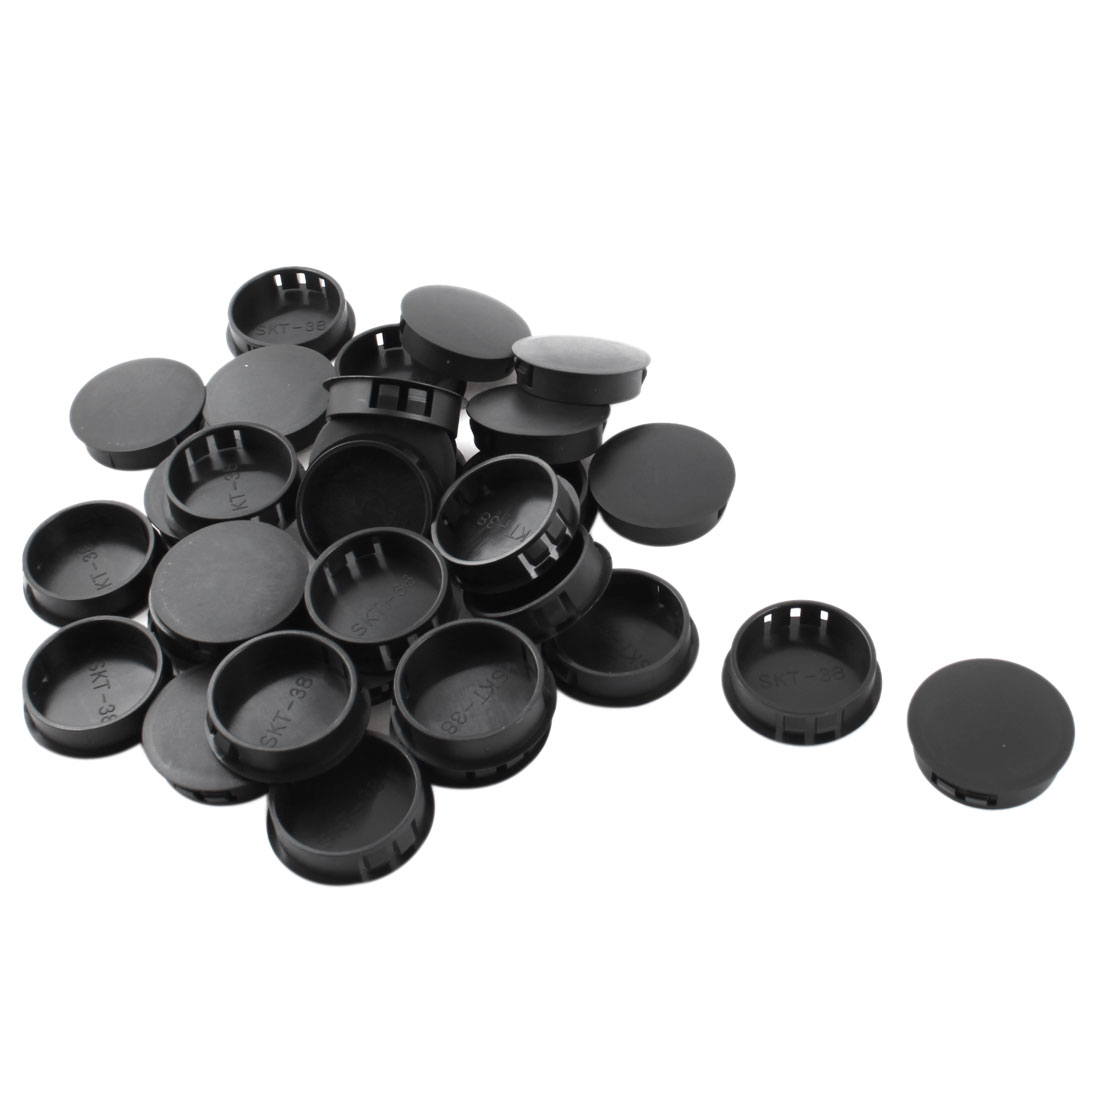 30Pcs 38mm Dia Insulated Black Plastic Snap in Mounting Blank Domed Locking Hole Cover Fastener Harness